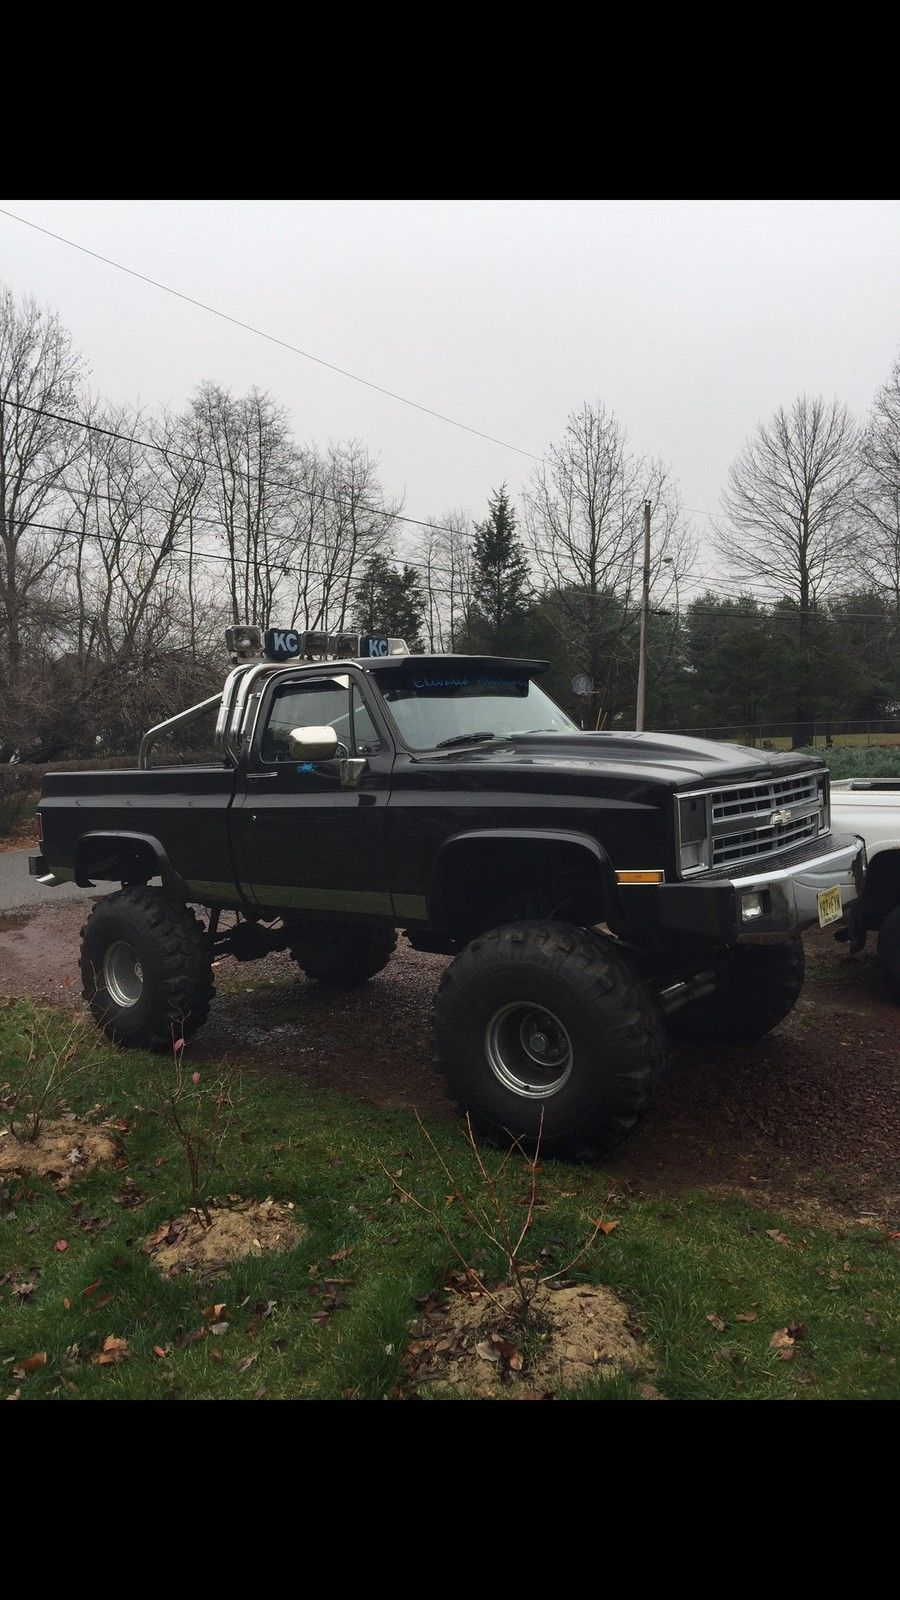 rare factory 1986 chevrolet truck k10 4 4 4wd swb 90s built show truck for sale. Black Bedroom Furniture Sets. Home Design Ideas